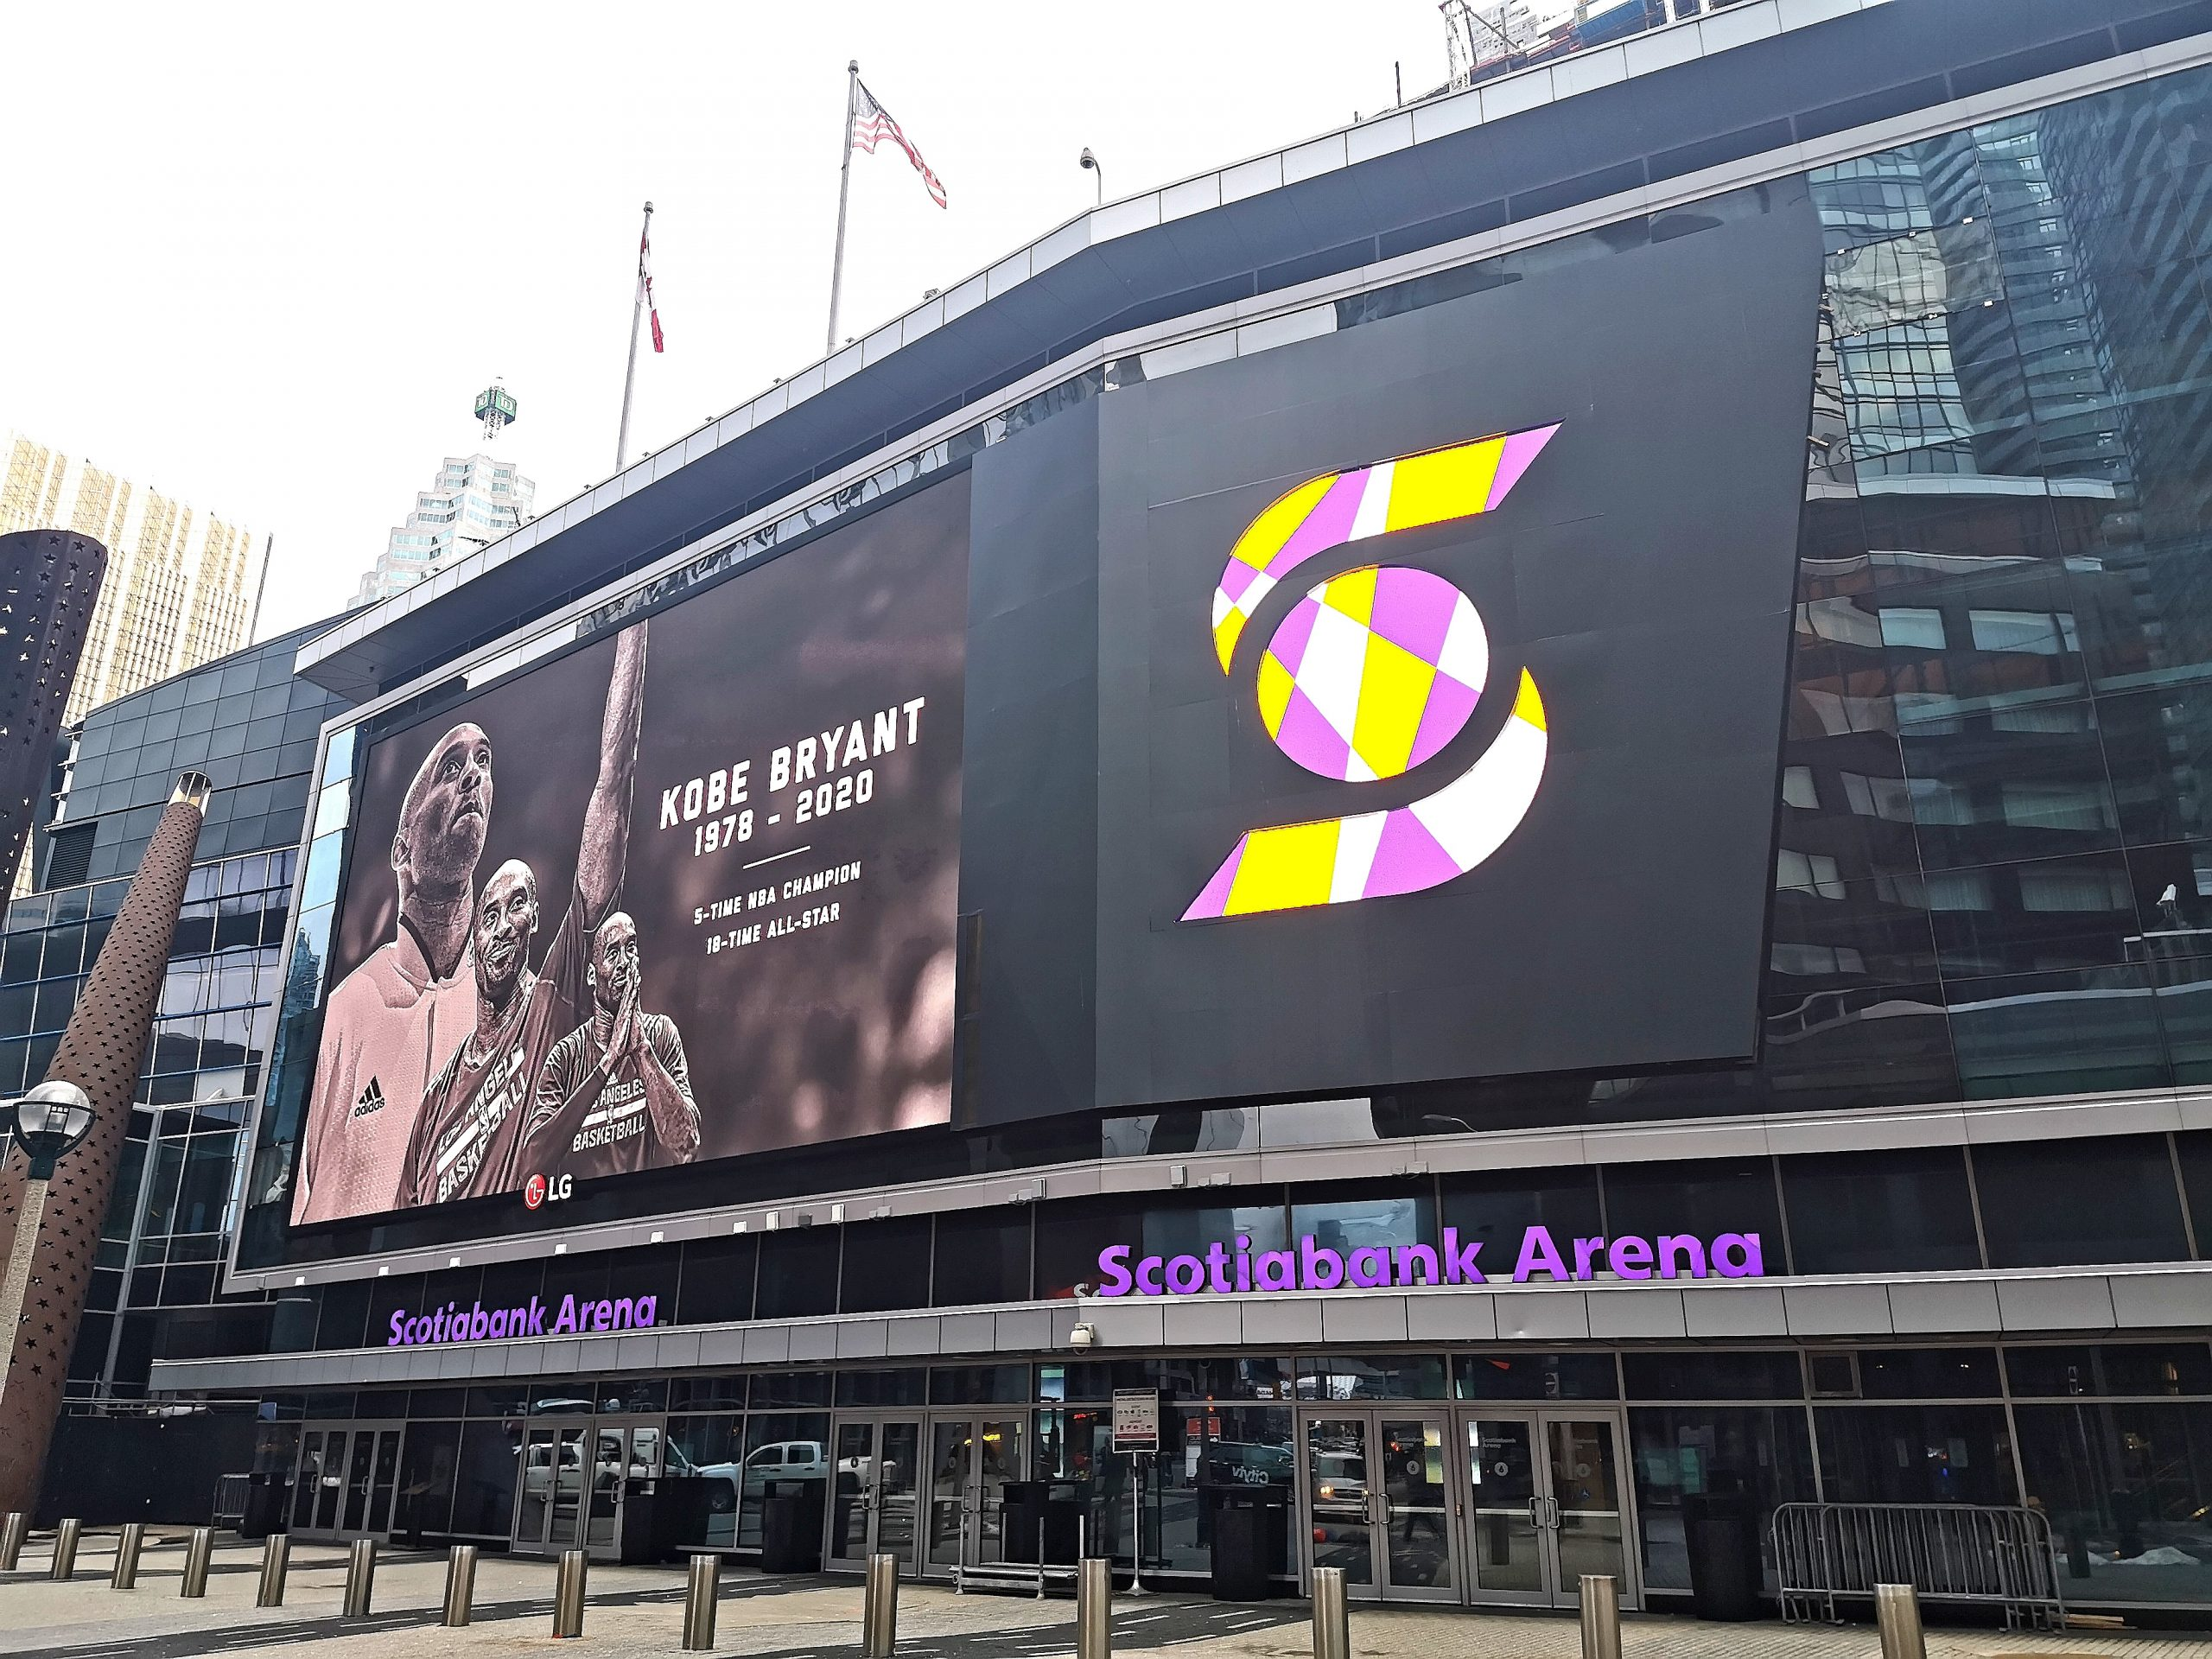 Scotiabank Arena Pay Tribute to Kobe Bryant by Turning Purple & Gold – Toronto, Canada